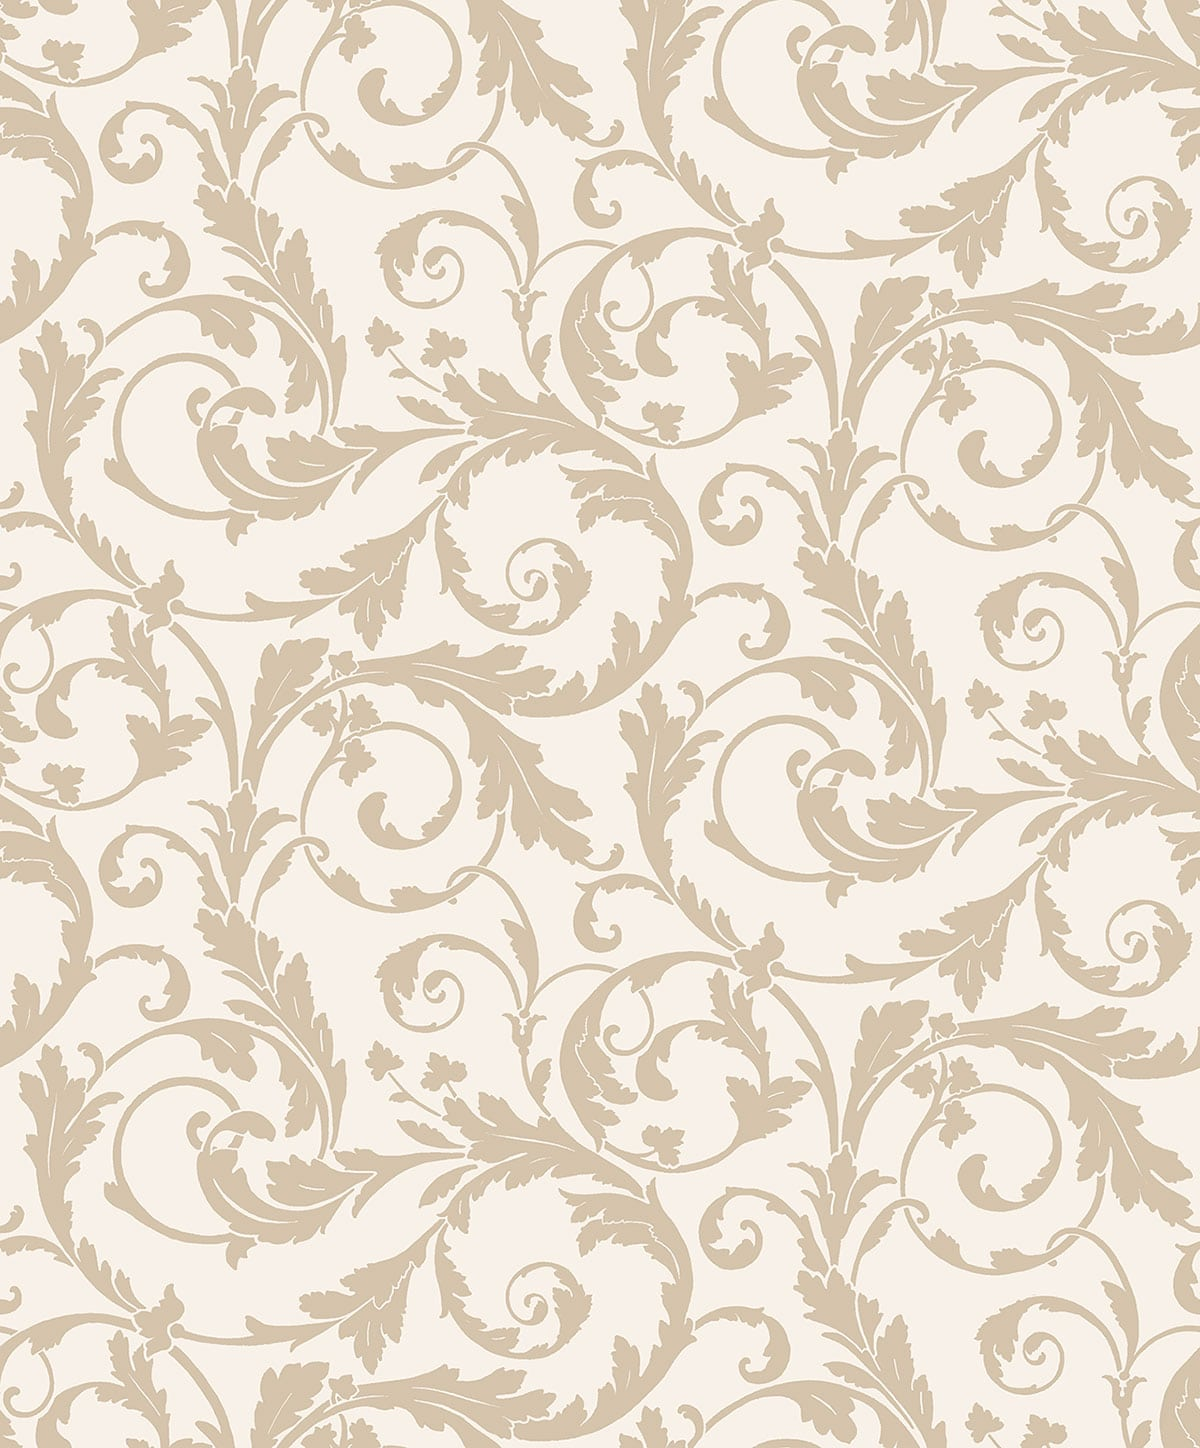 REGENCY SCROLL GOLD A PV00230